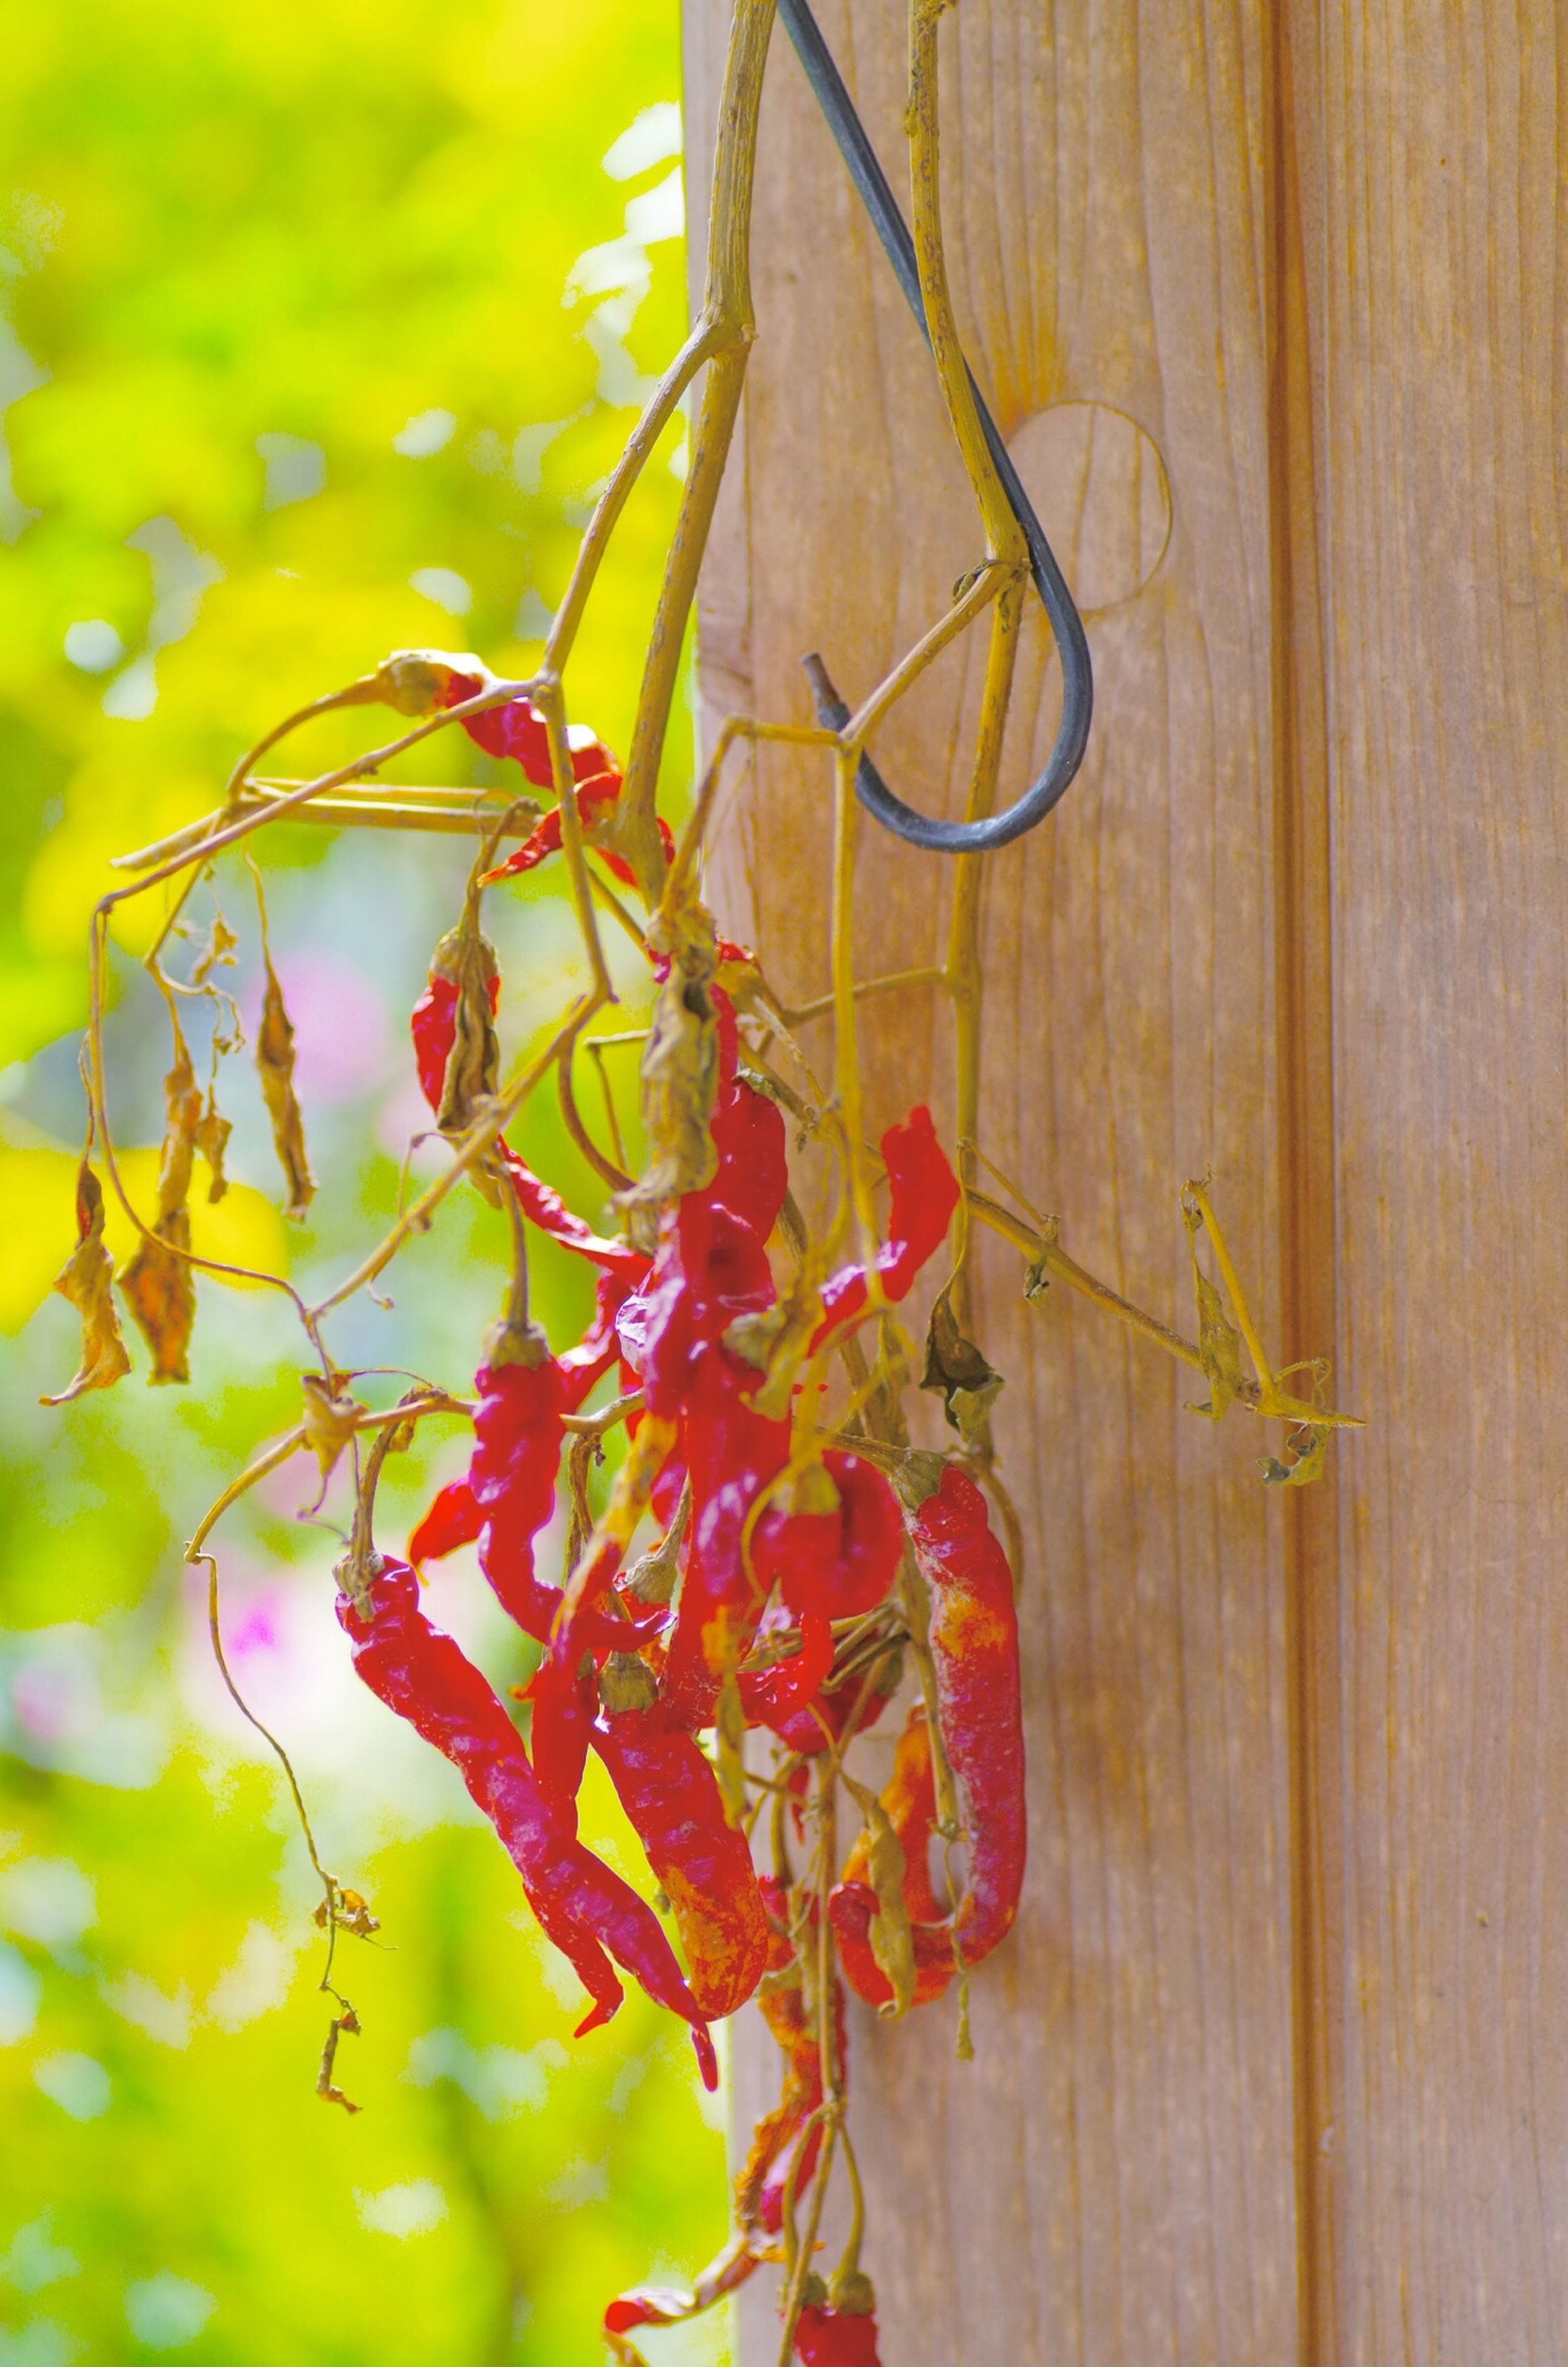 close-up, focus on foreground, growth, leaf, plant, nature, wood - material, stem, insect, flower, red, day, outdoors, beauty in nature, green color, fragility, no people, hanging, selective focus, branch